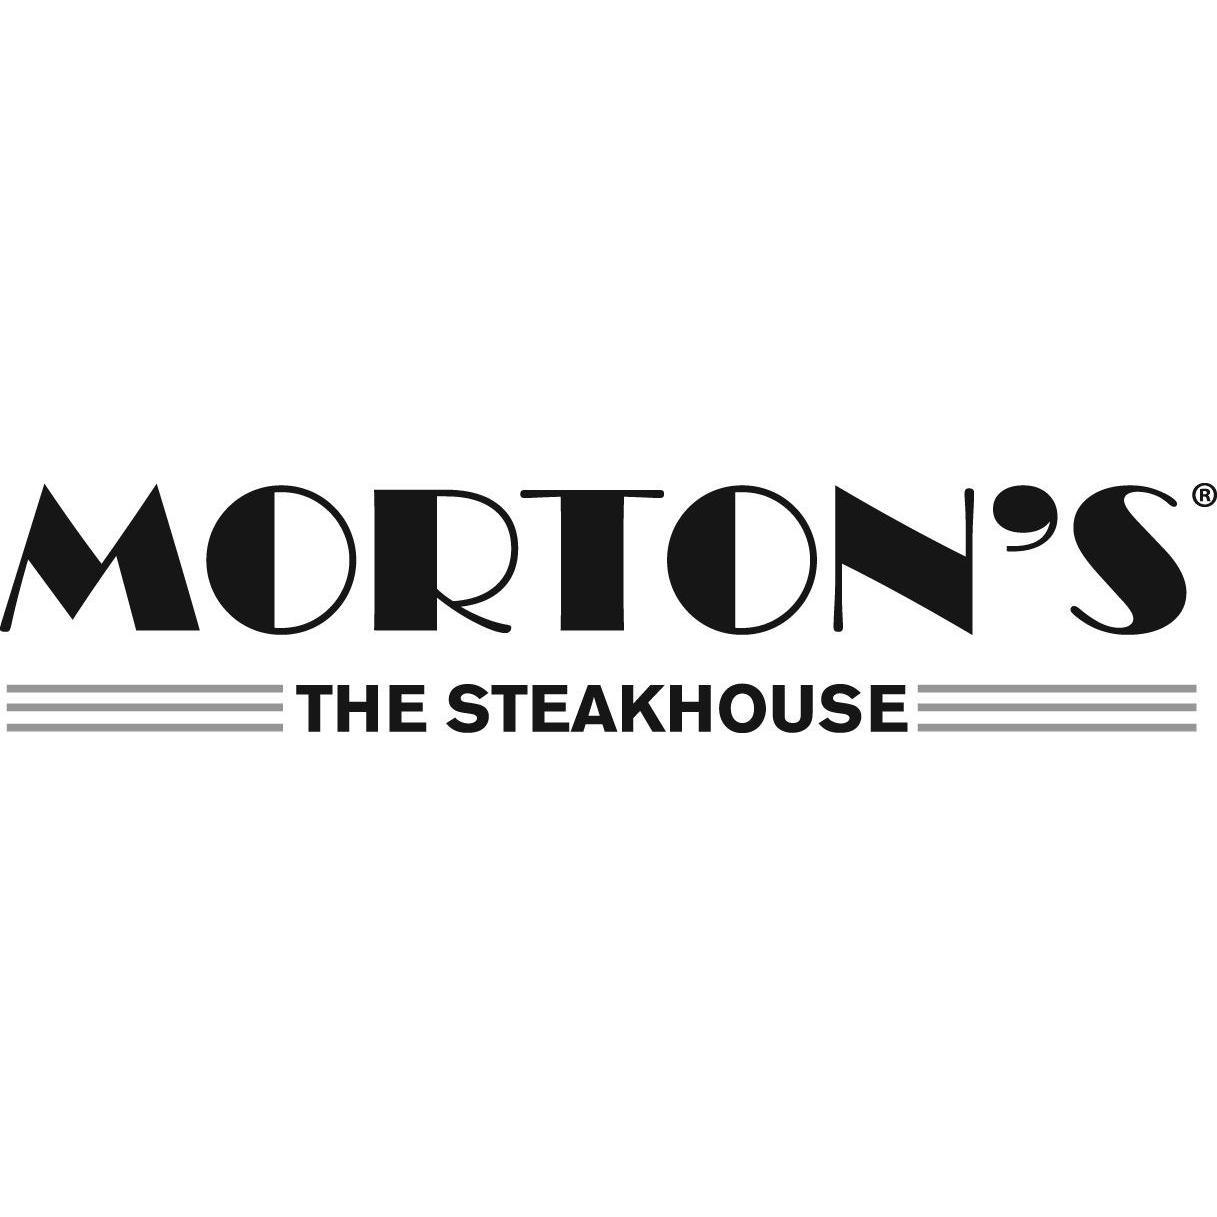 Morton's The Steakhouse - New York, NY 10017 - (212)972-3315 | ShowMeLocal.com